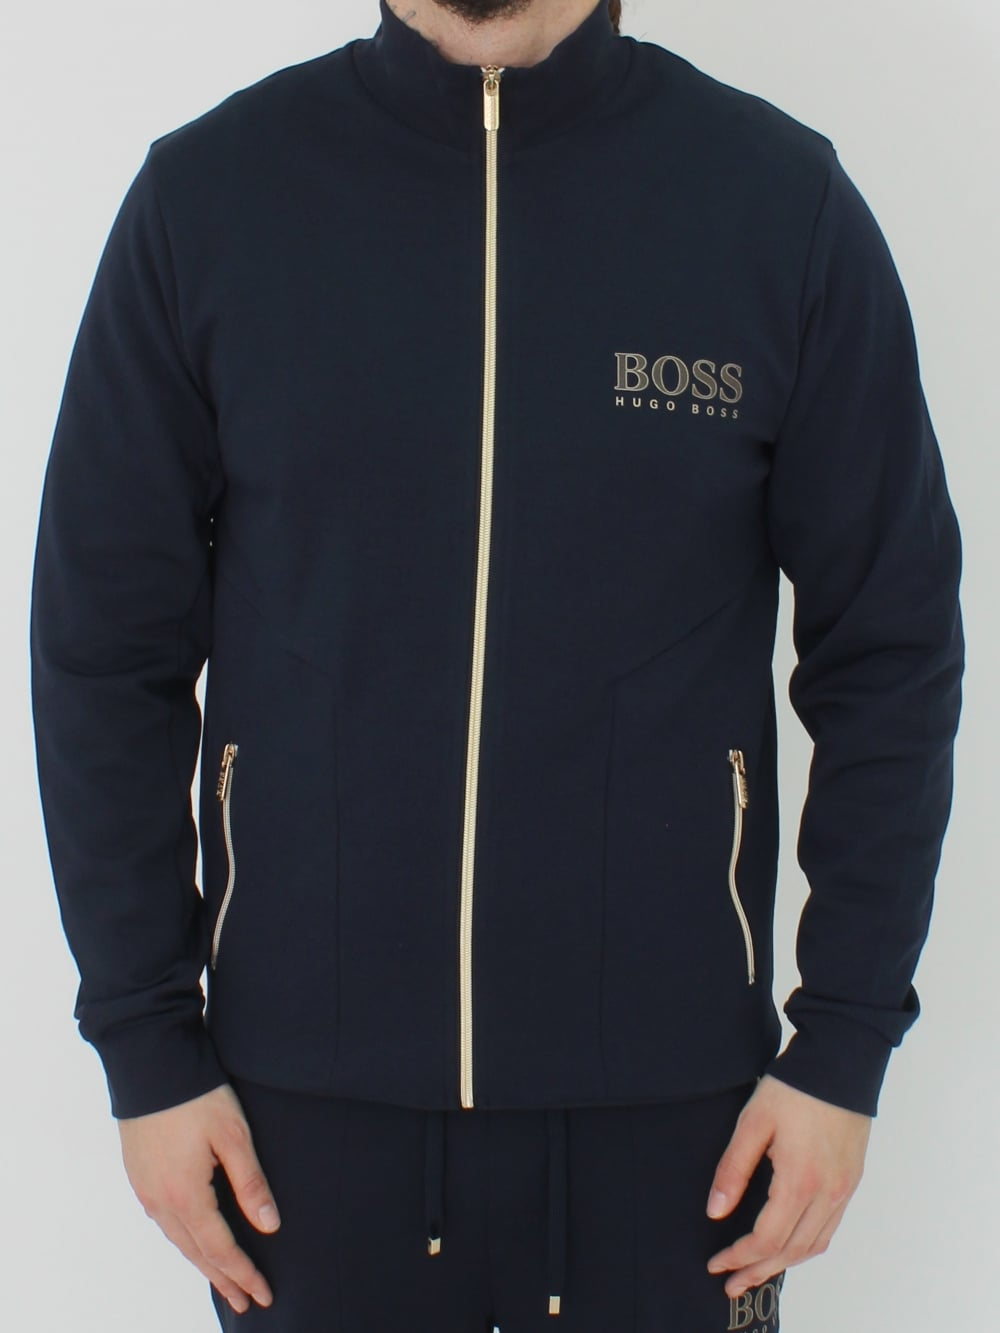 4f8c54e81 Hugo Boss Tracksuit Jacket in Dark Blue - Northern Threads